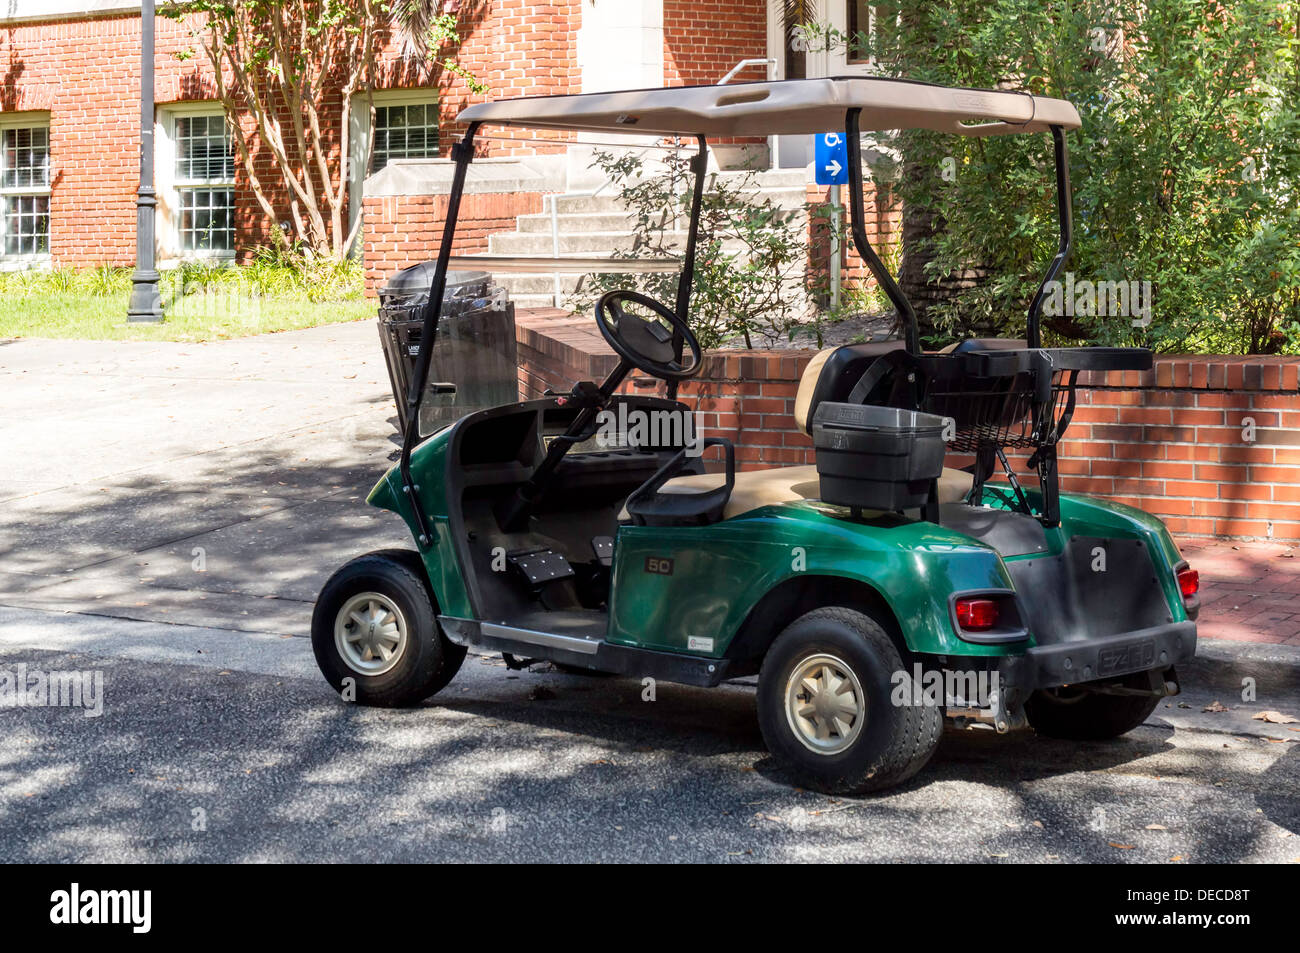 Electric EZGO powered golf cart, dark green with black trim cream coloured top and upholstery. - Stock Image